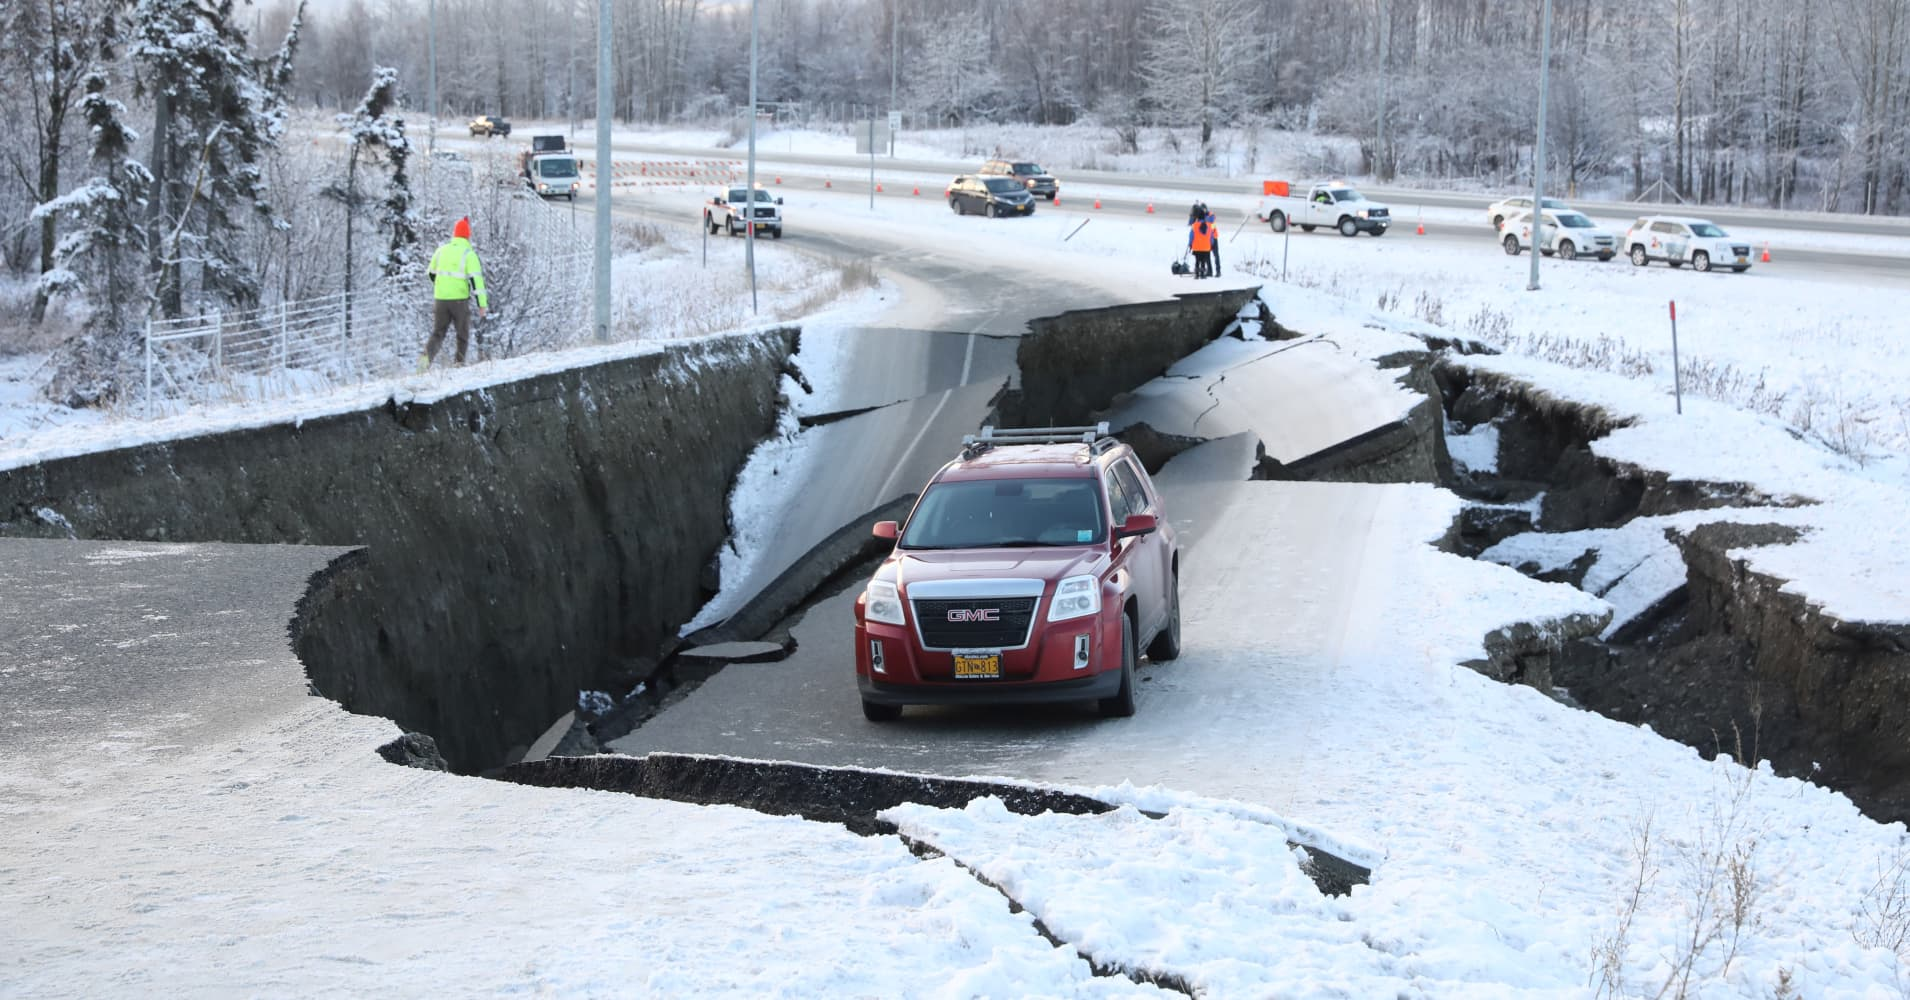 Major earthquake damages infrastructure near Anchorage, Alaska